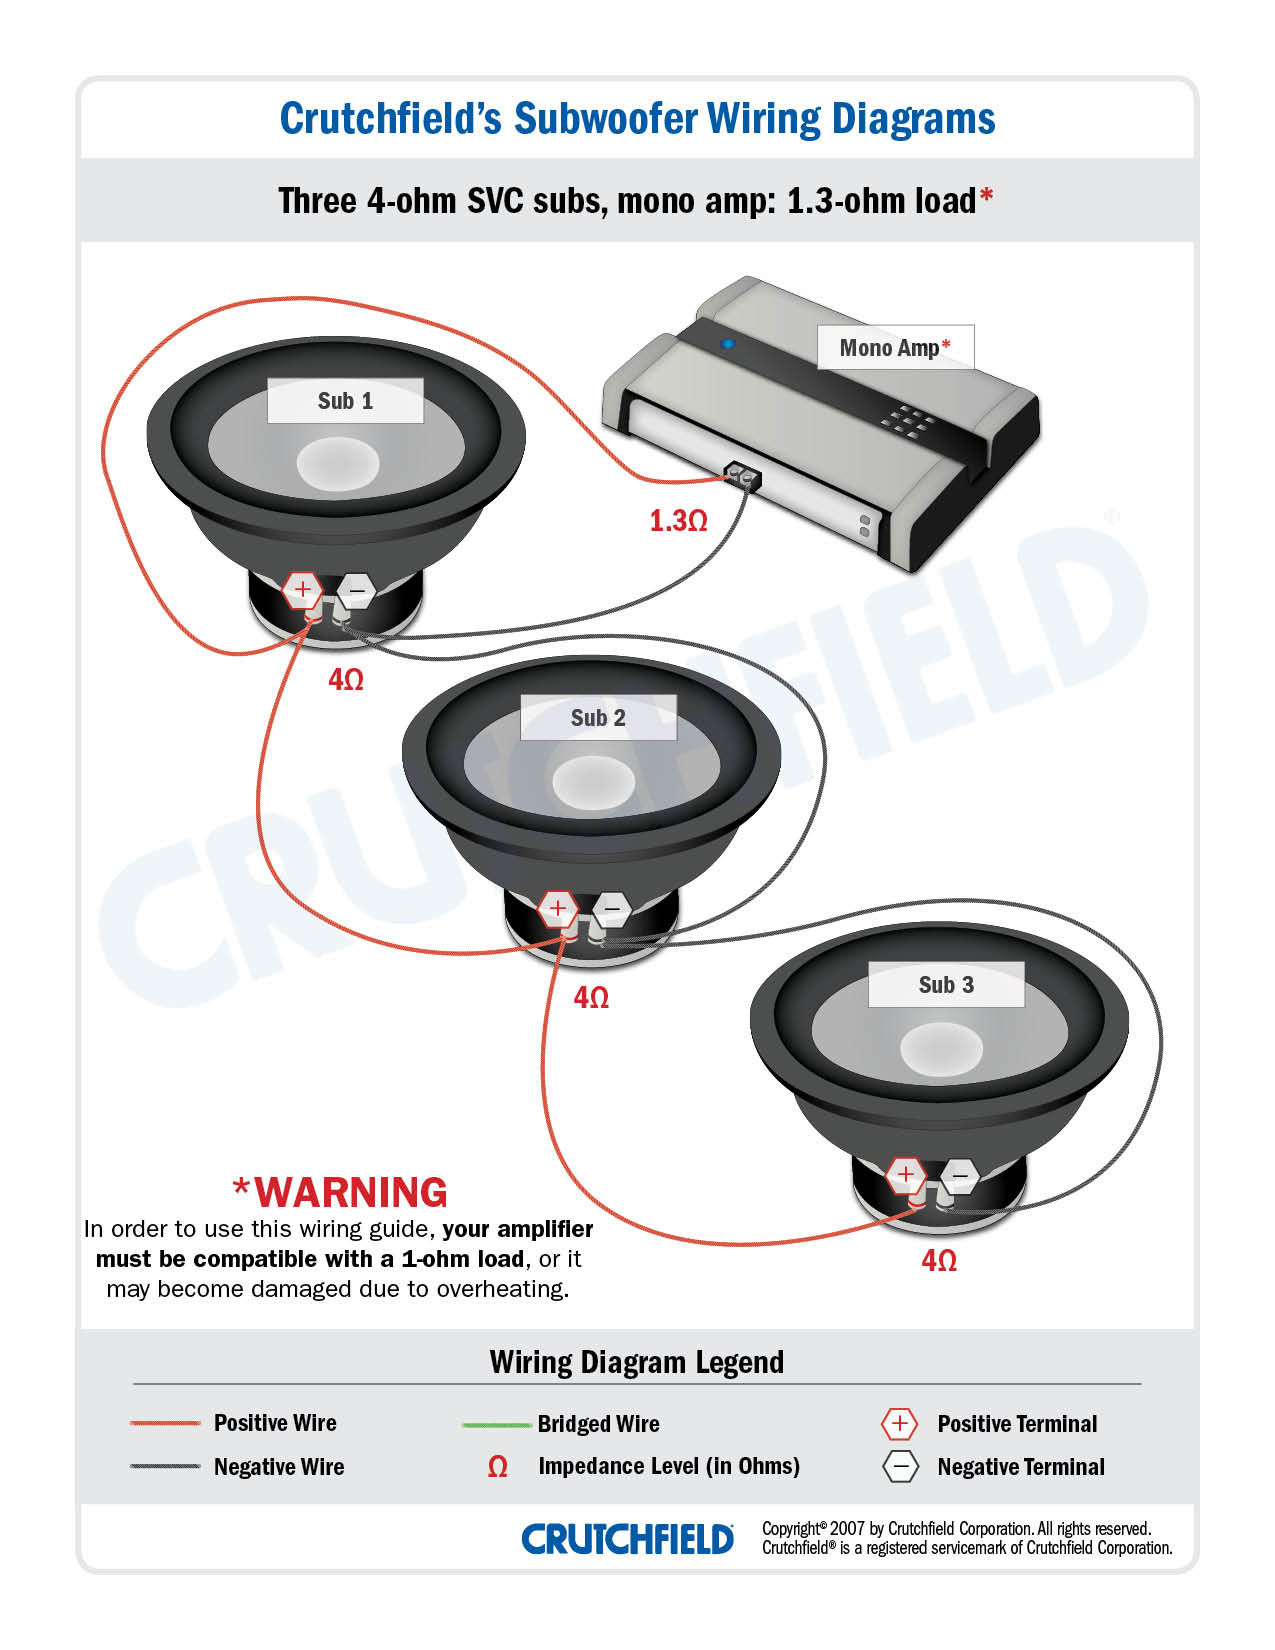 3 SVC 4 ohm mono low imp wiring diagram for speakers connector for speakers \u2022 wiring vibe subwoofer wiring diagram at eliteediting.co